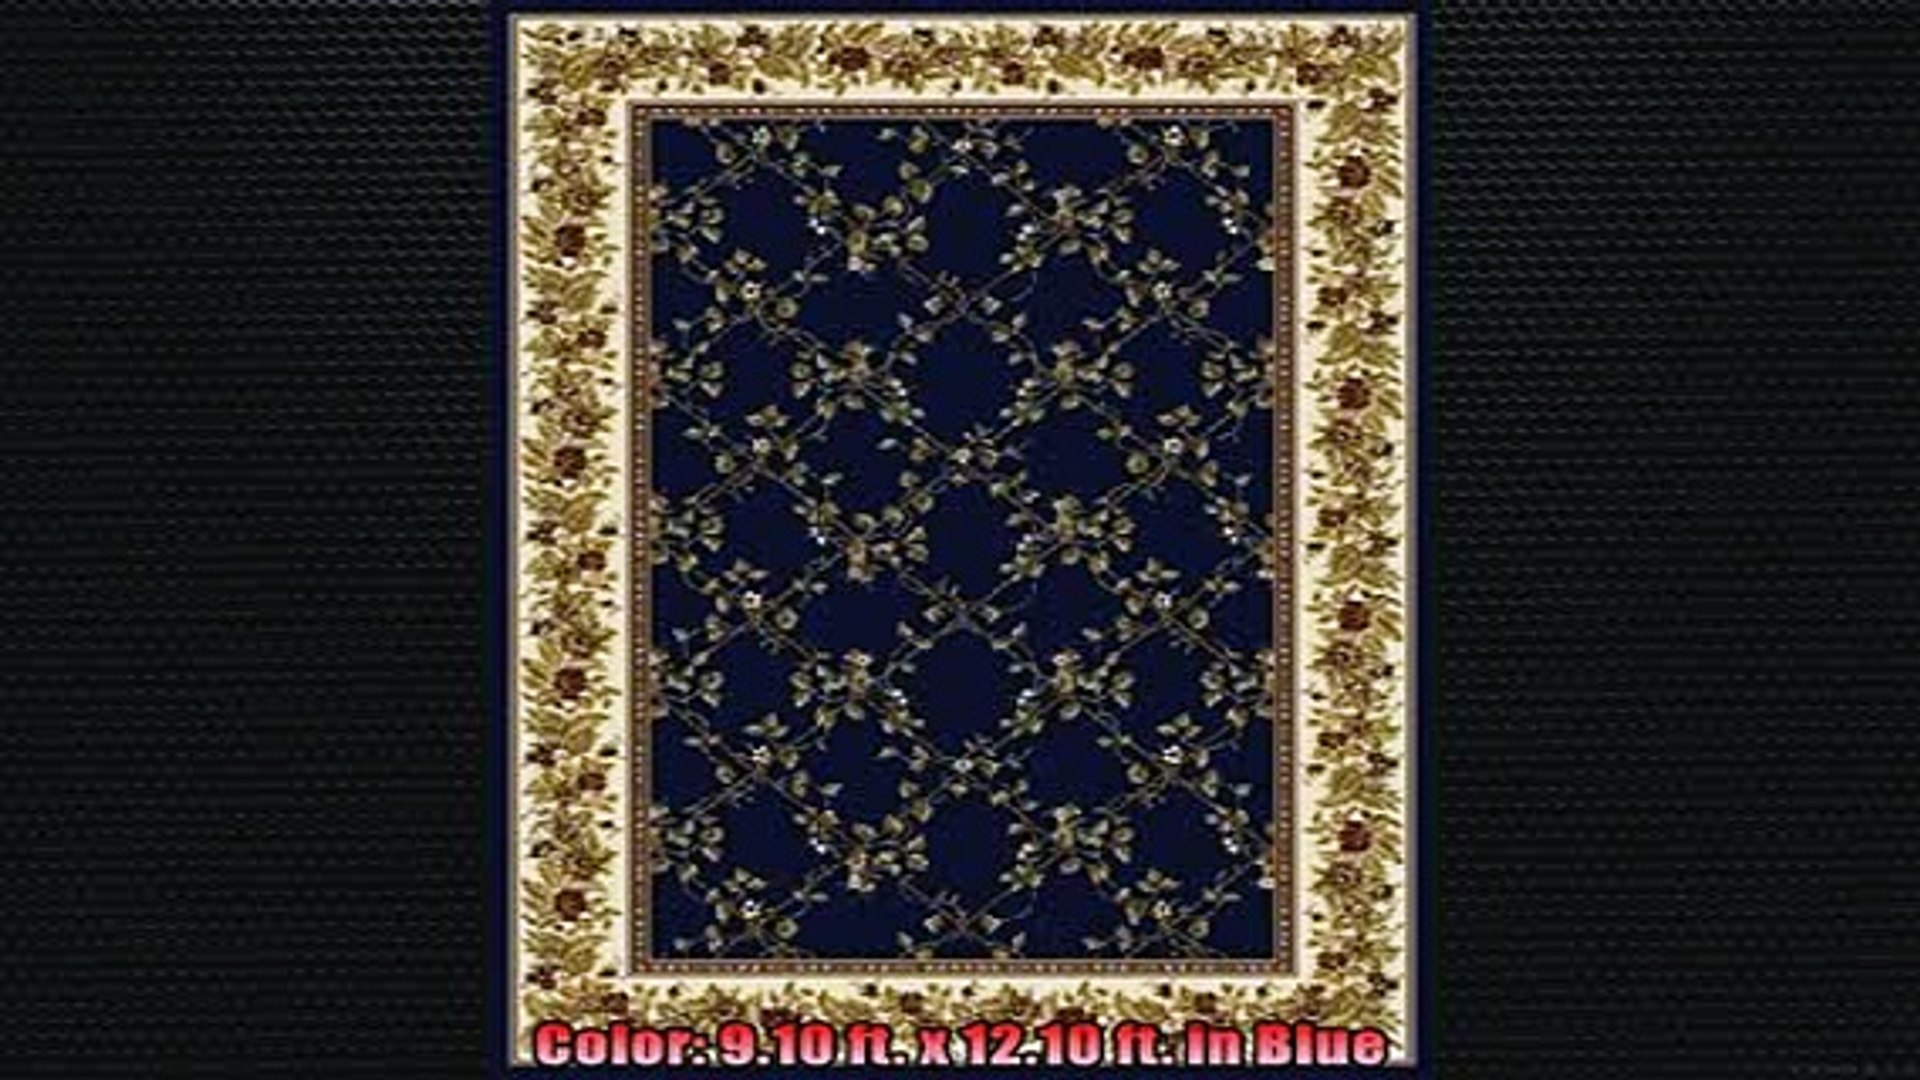 Most popular  Noble Rug 910 ft x 1210 ft in Blue